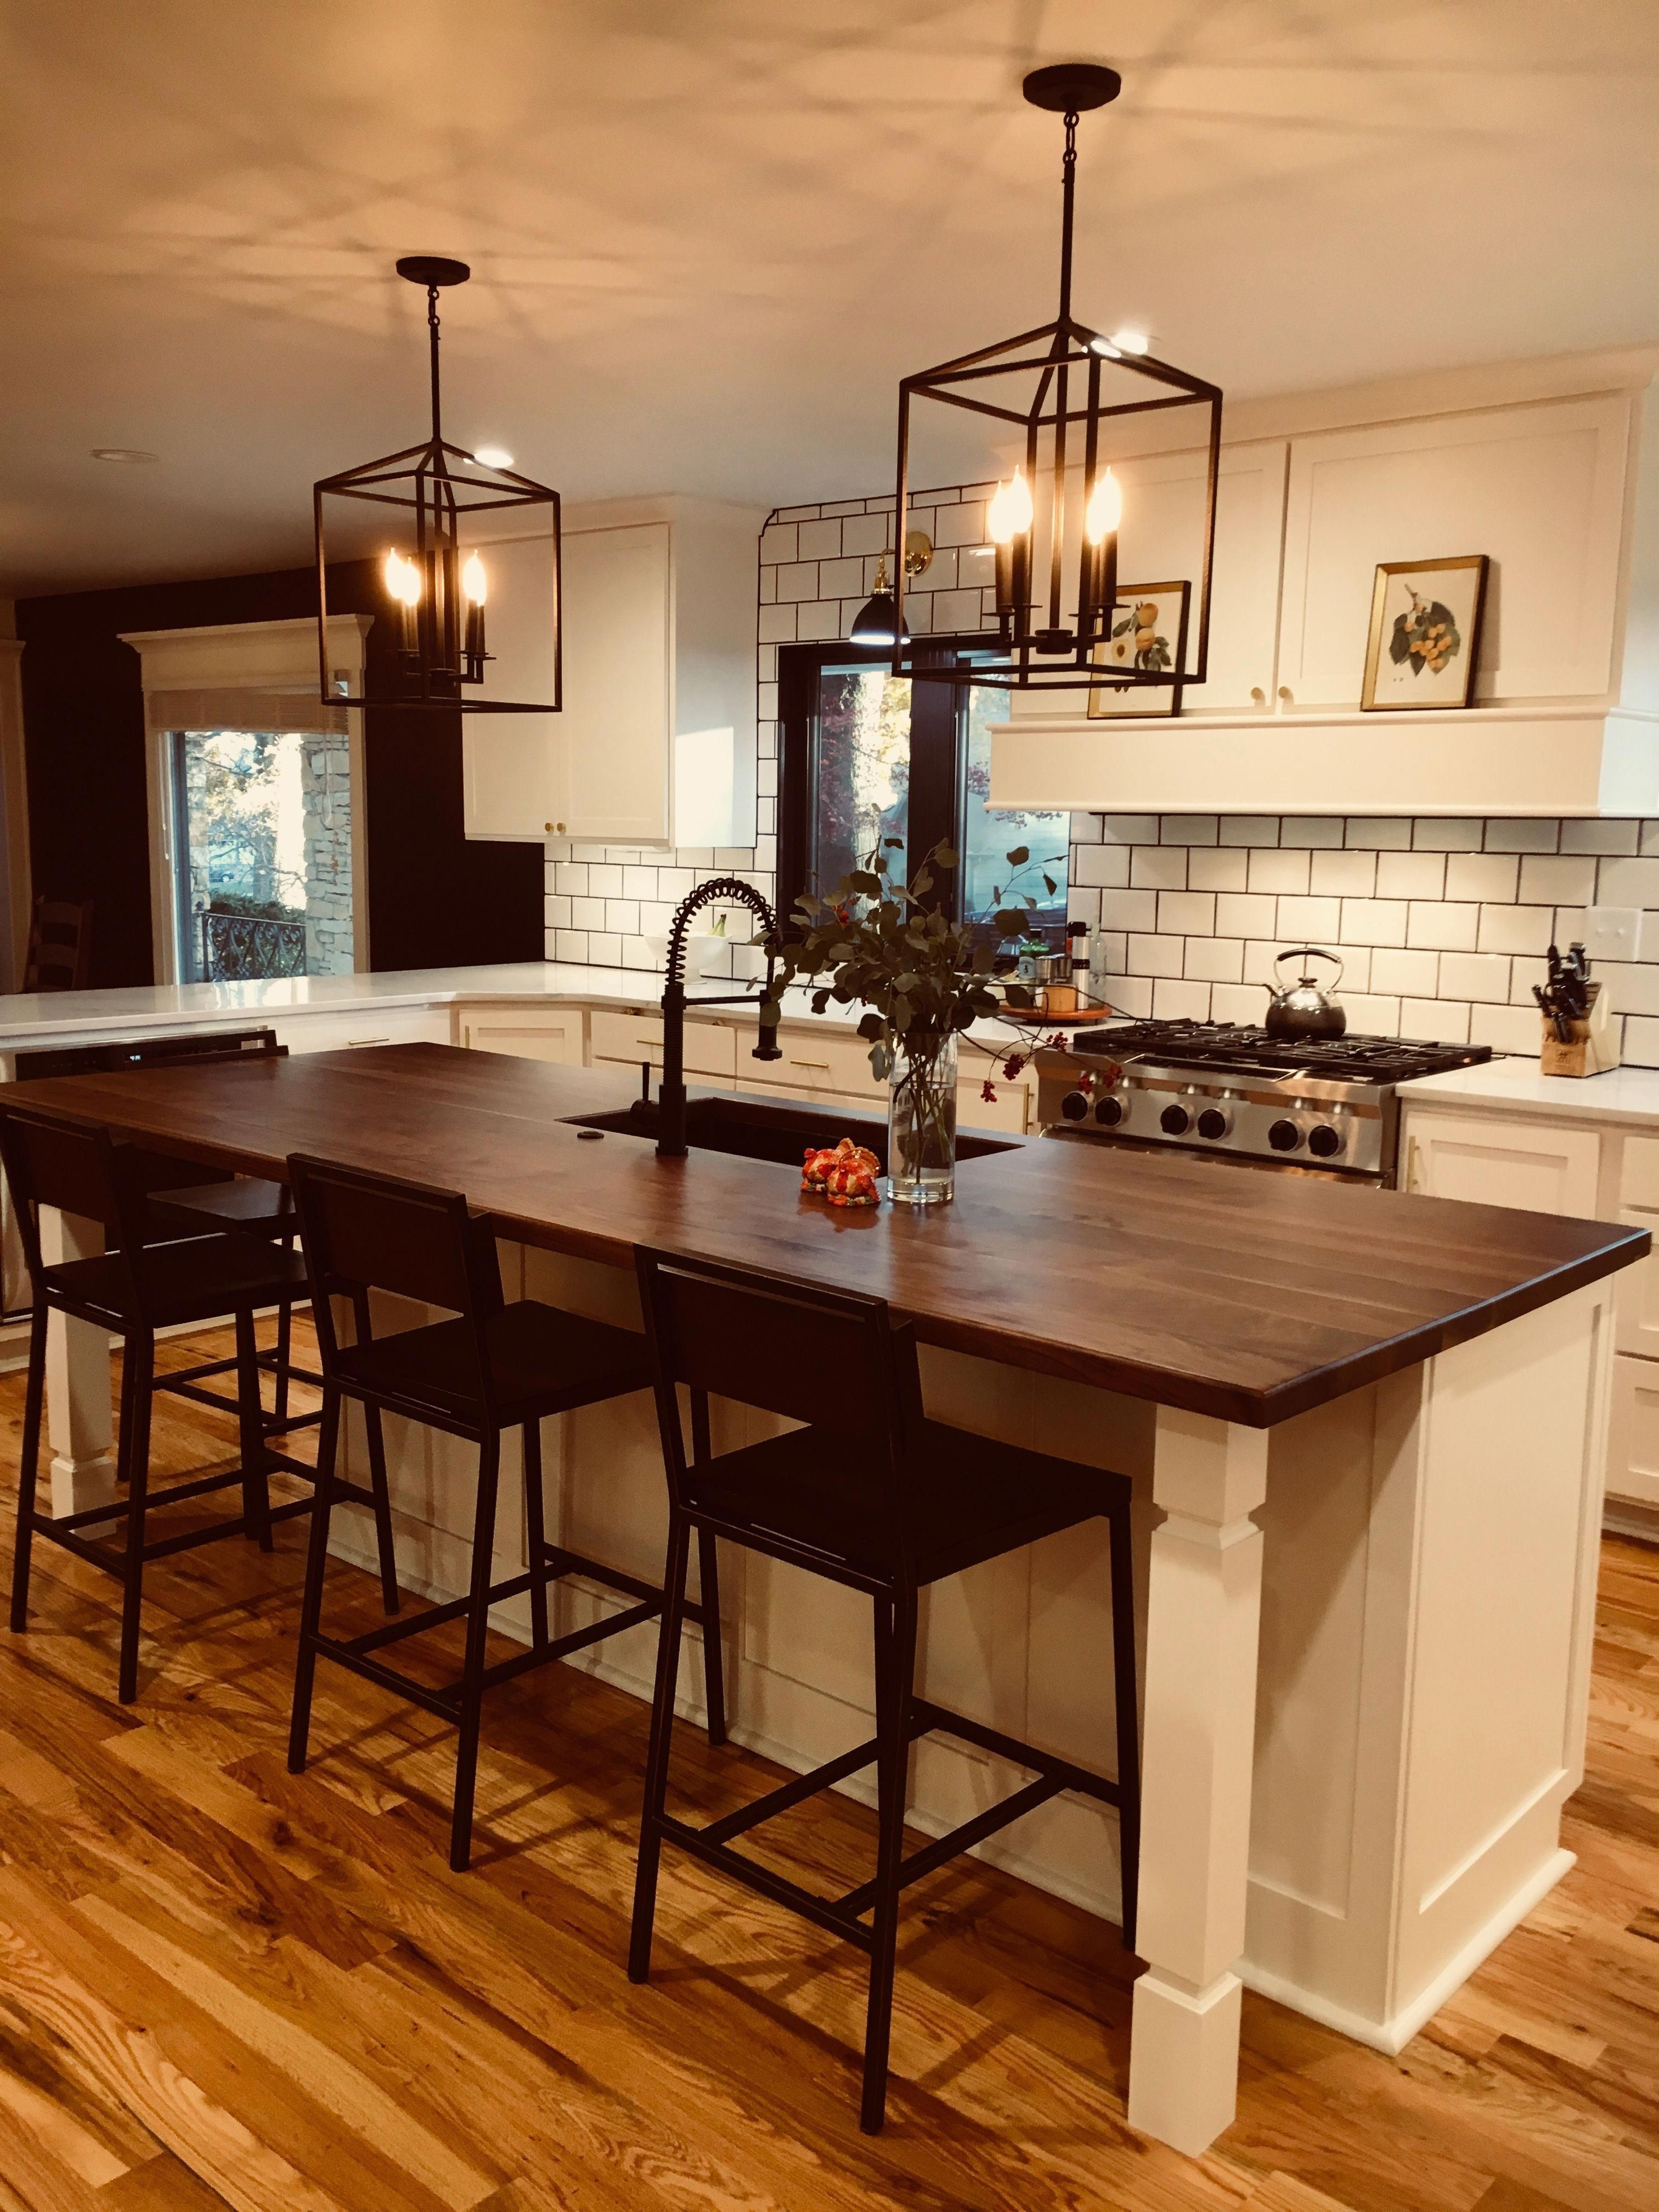 Sincere Developed Kitchen Renovating Ideas Official Website In